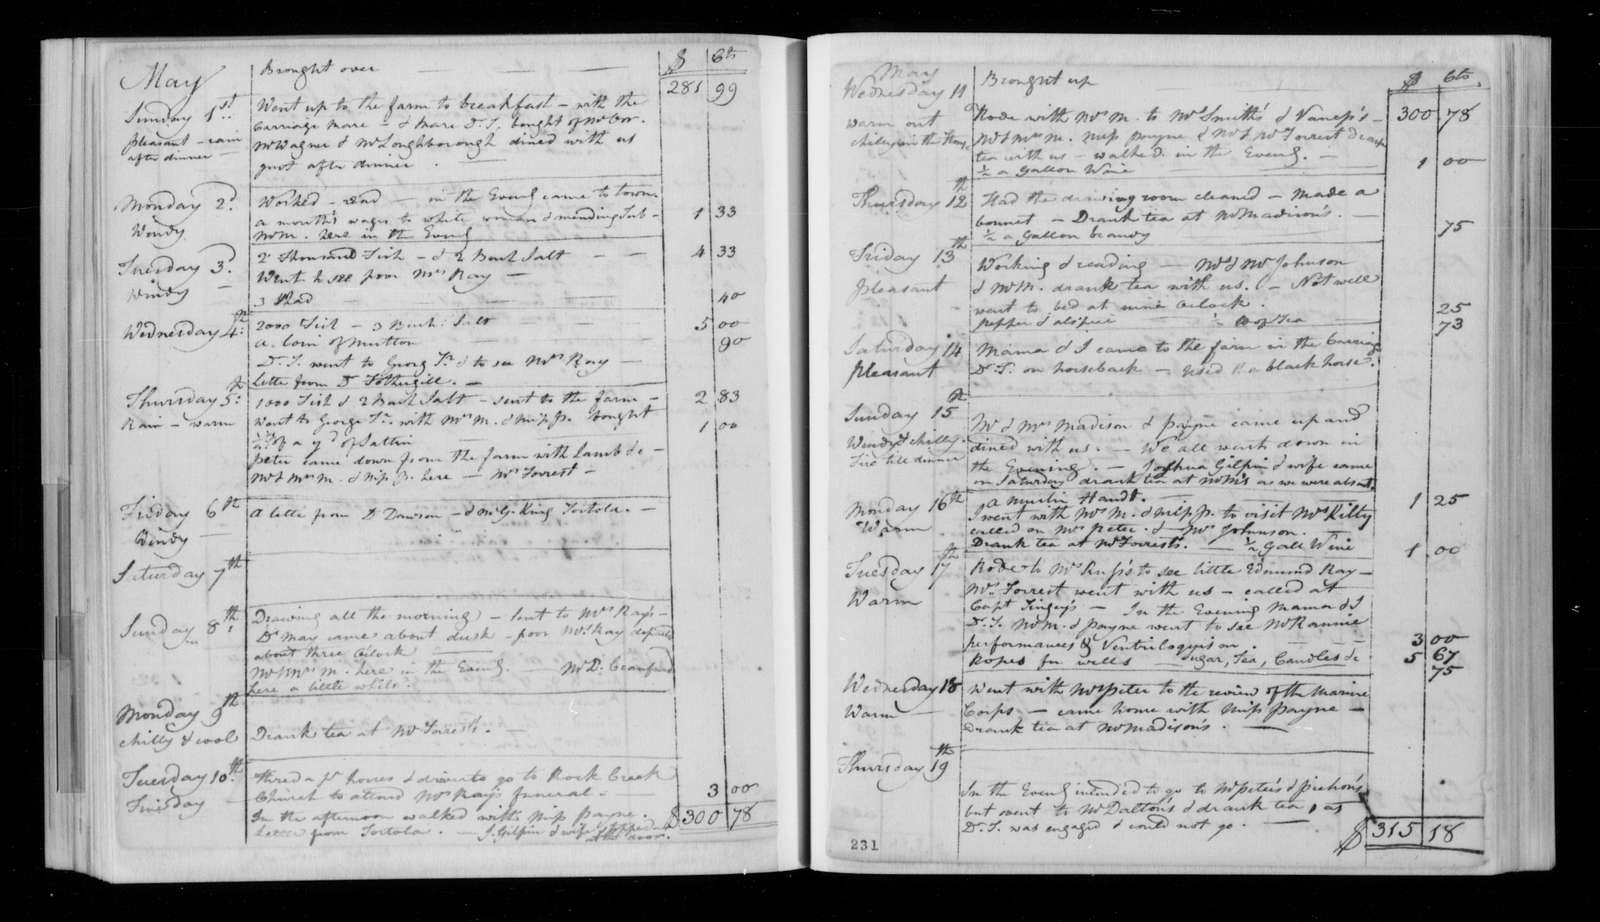 Anna Maria Brodeau Thornton Papers: Diaries and journals; Vol. 1, 1793-1804